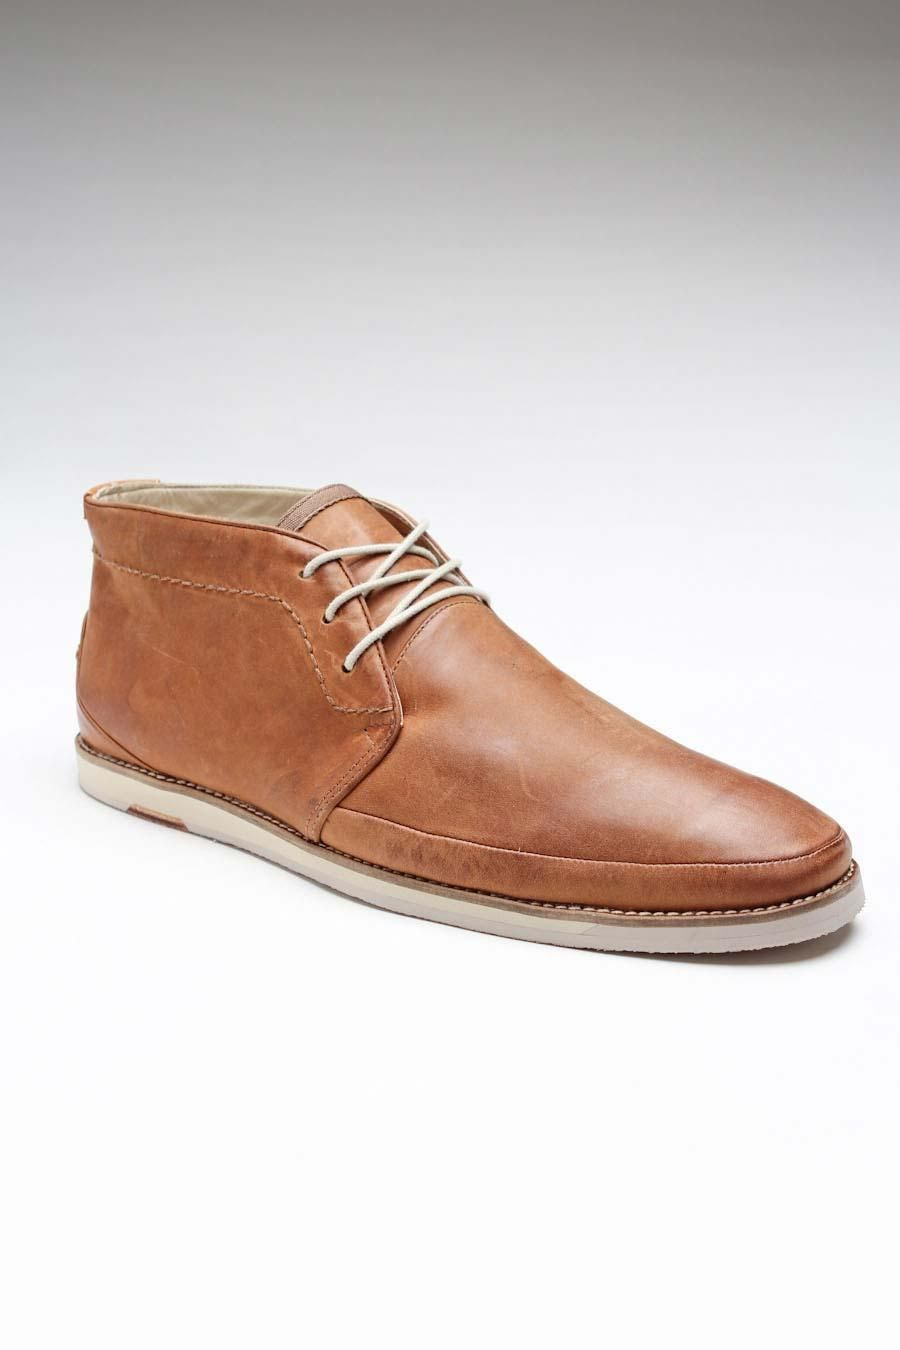 Simple Brown Shoes ~ I love it!